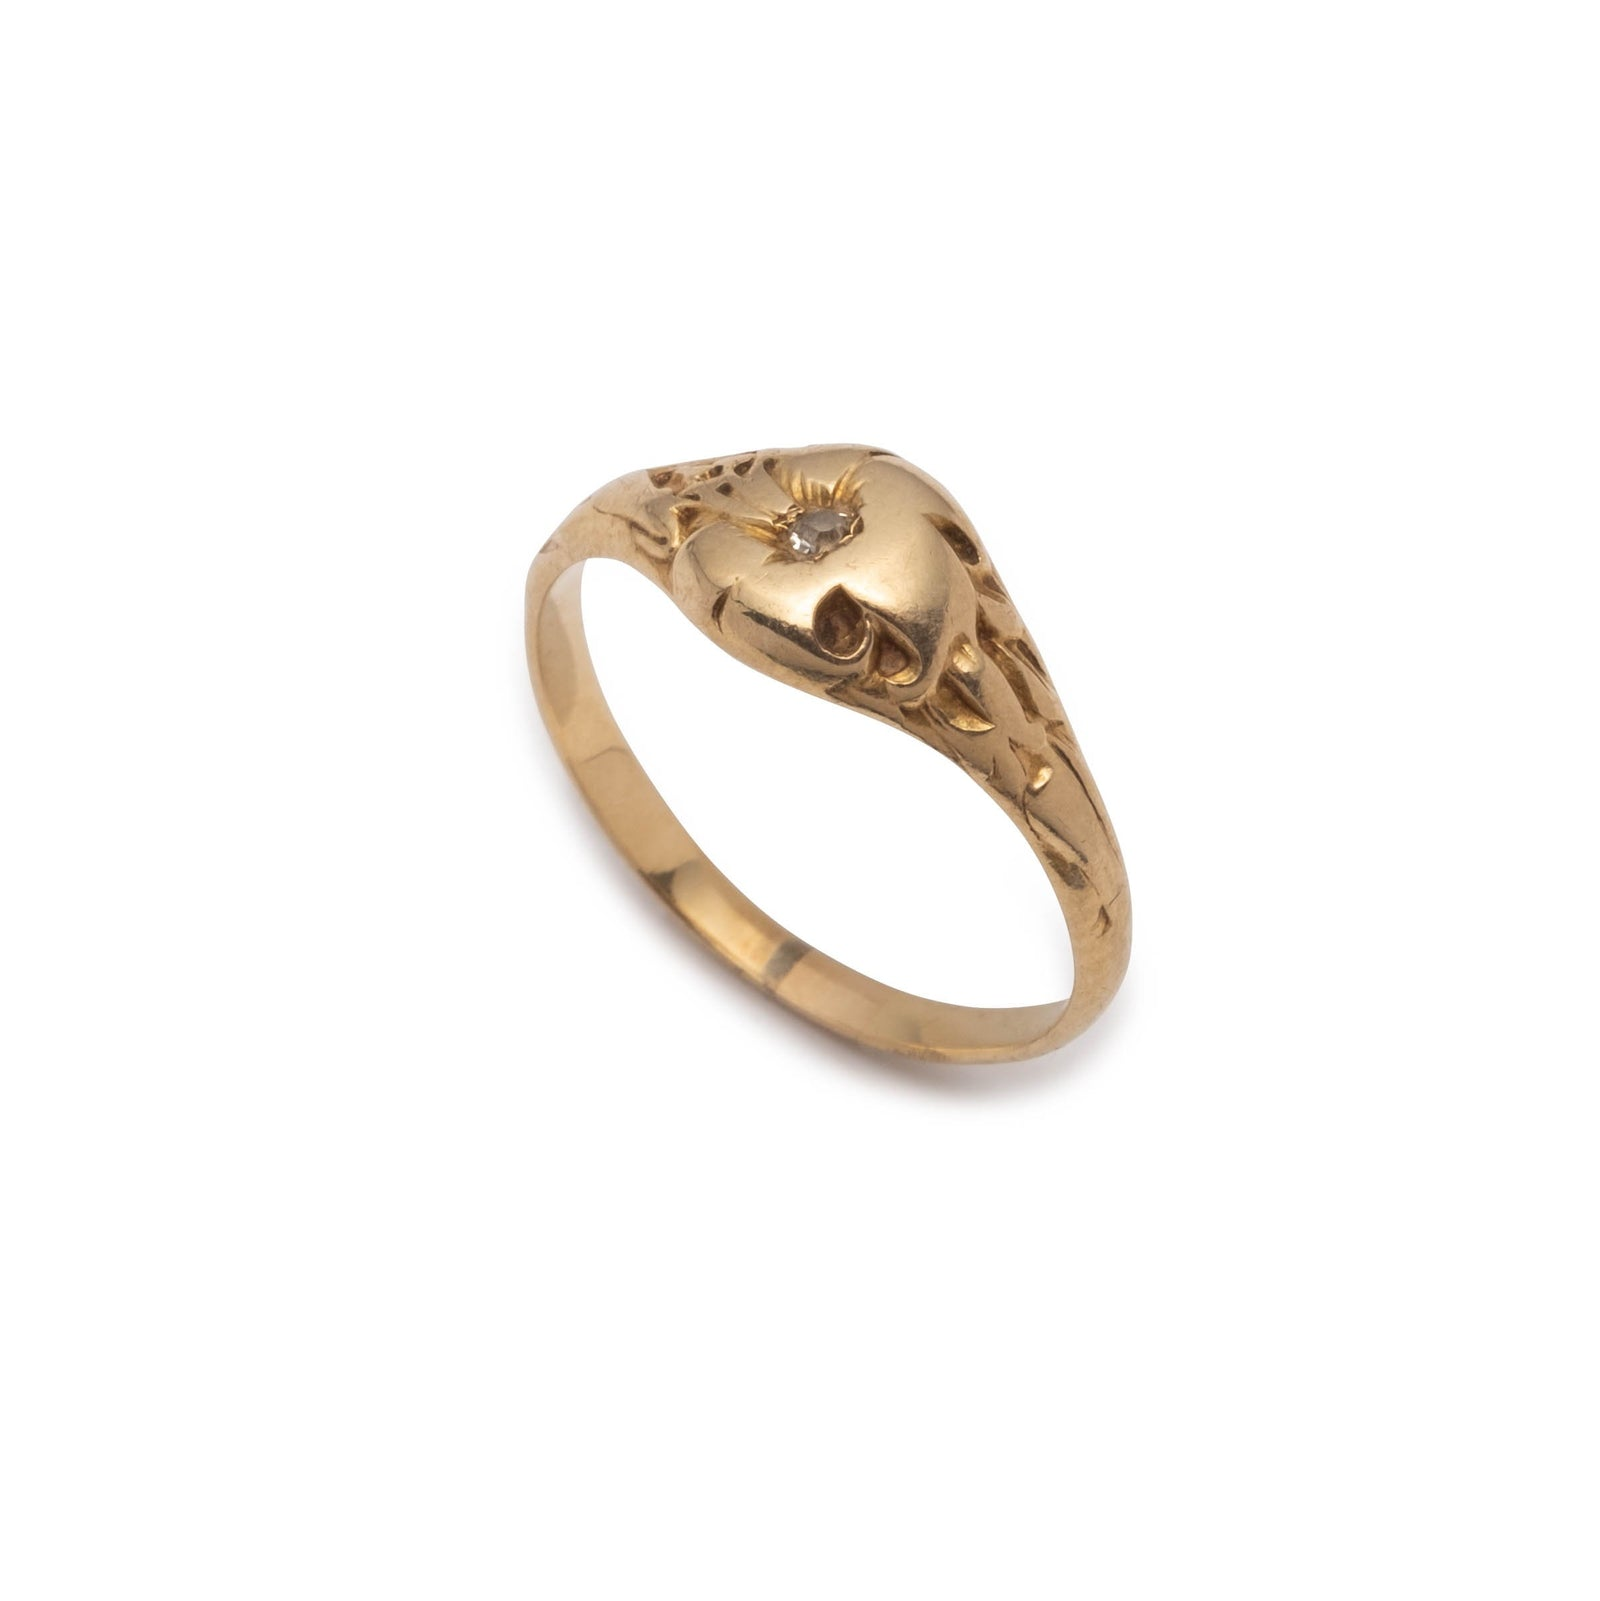 Antique Art Nouveau 14k Gold Lily Ring with Diamond